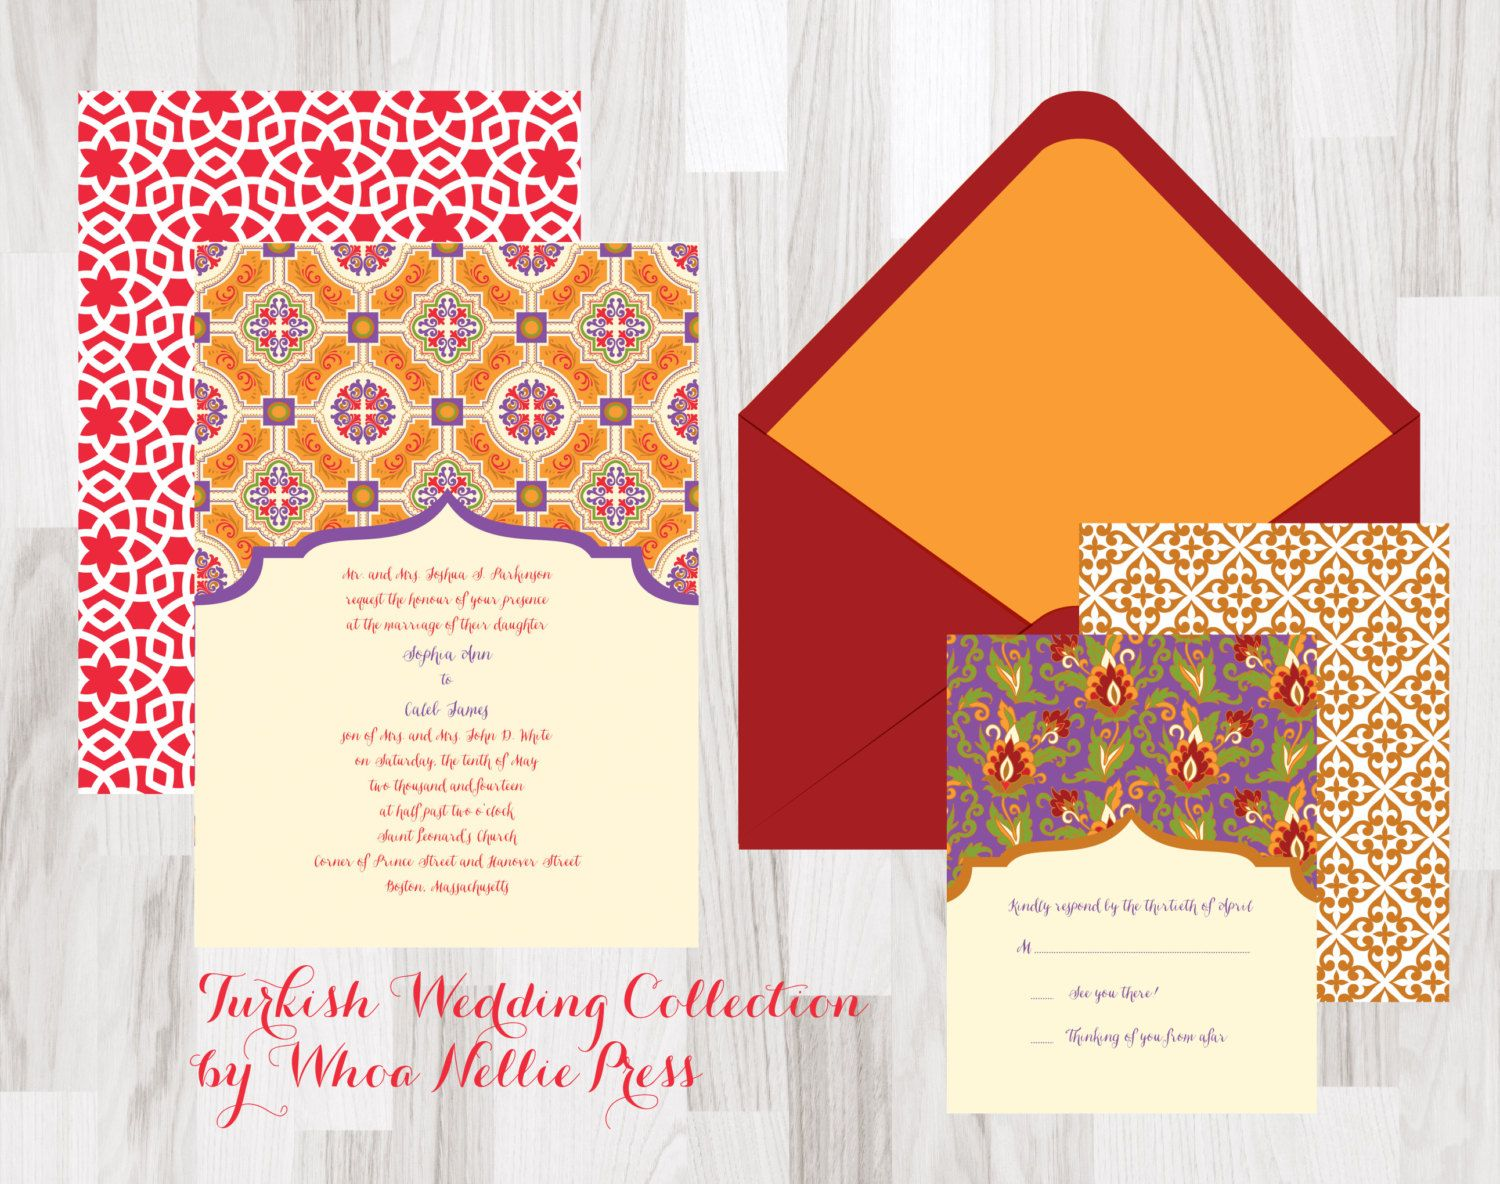 Turkish/Morocco Wedding Invitations | Pinterest | Morocco and Weddings